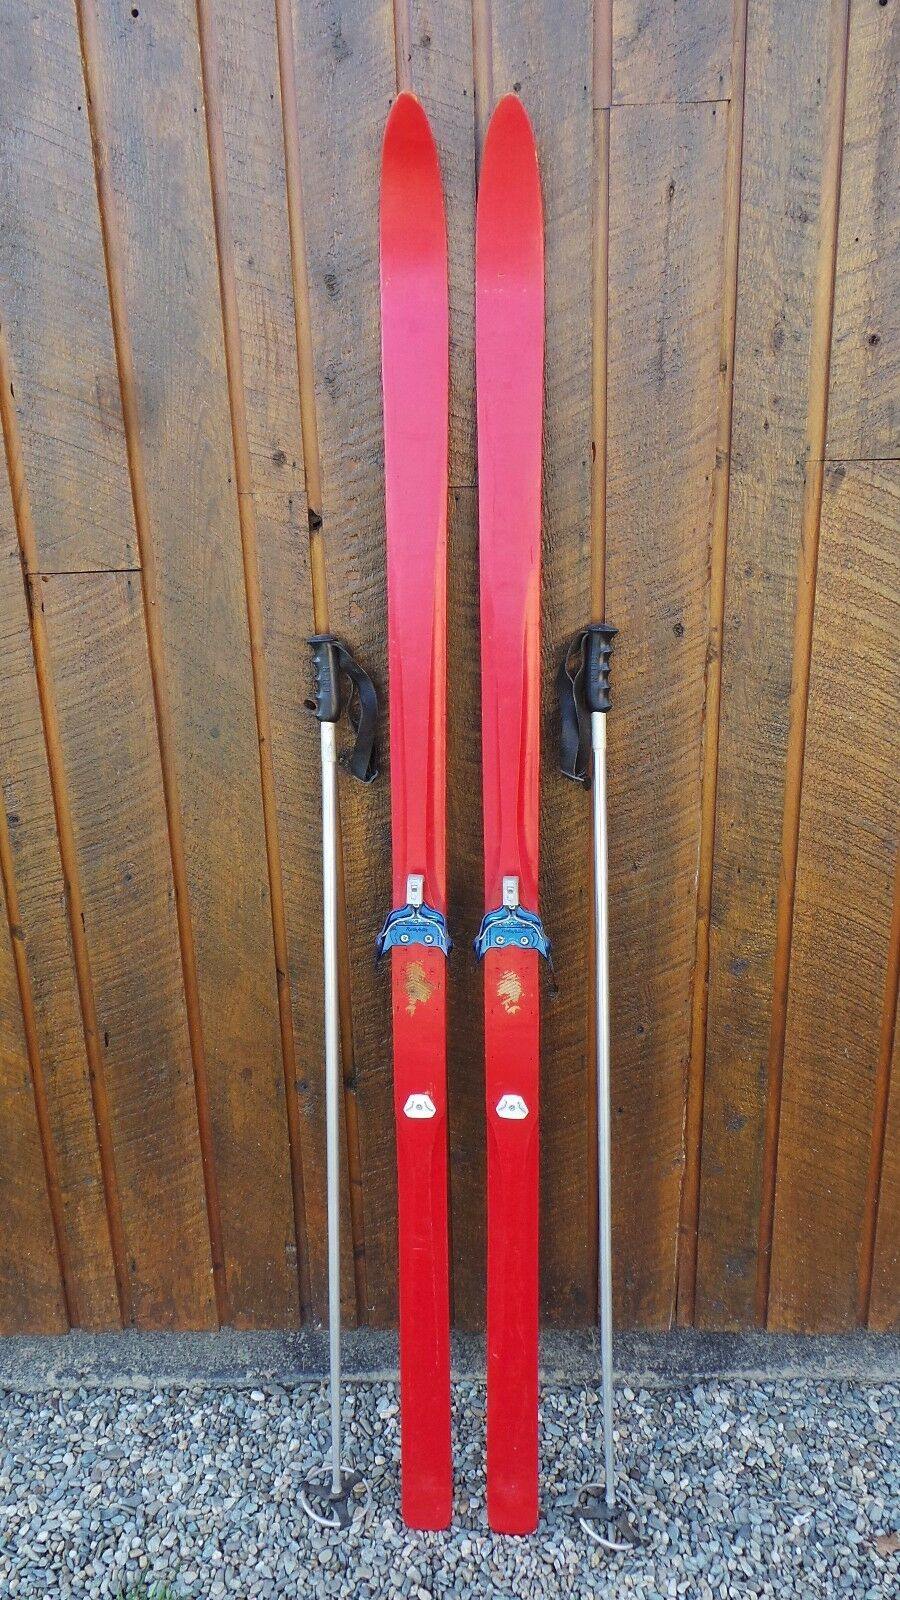 VINTAGE  Wooden 77  Skis Has  Metal Bindings In Very Good Condition  for wholesale